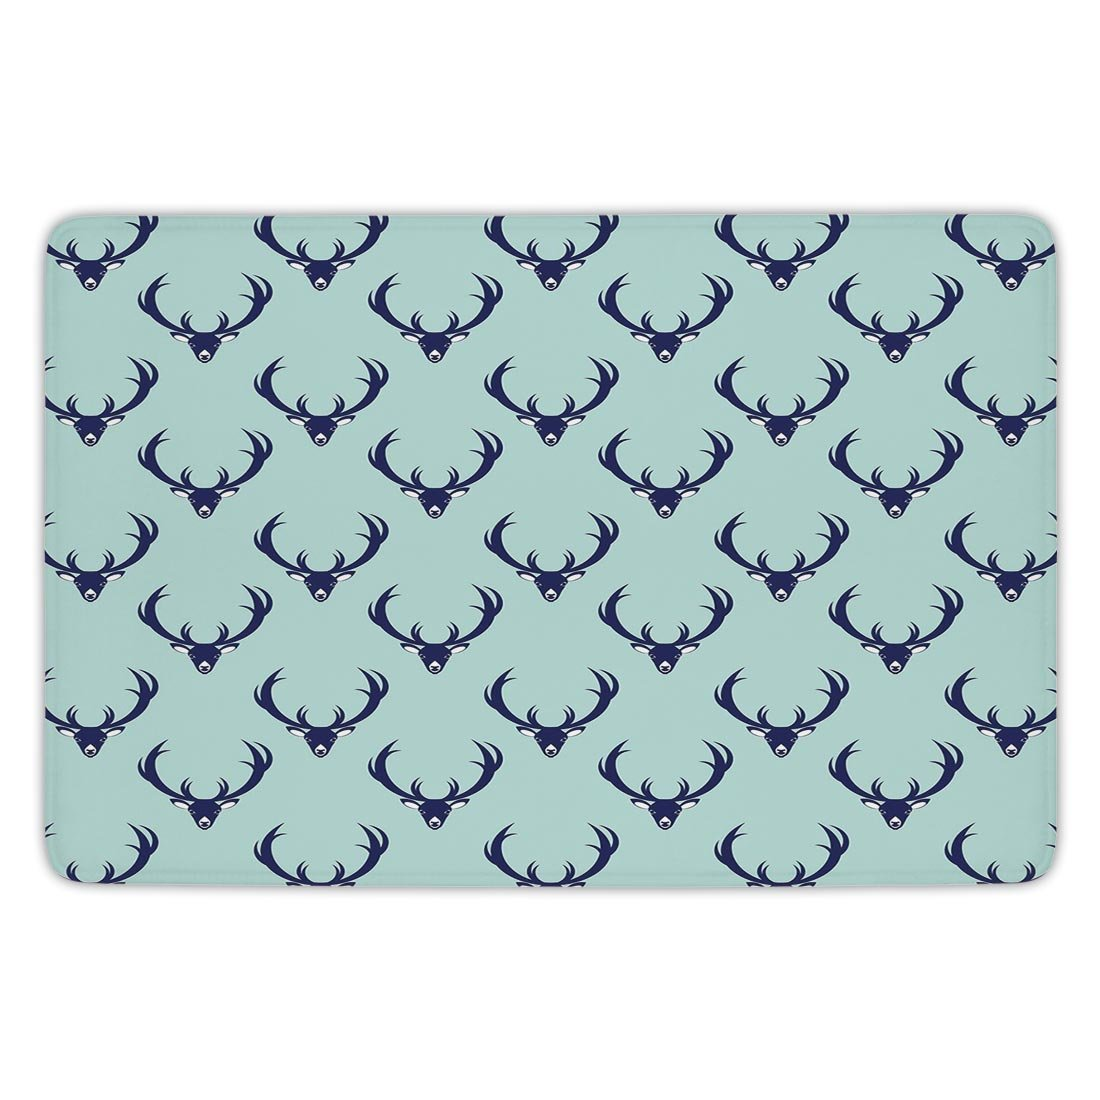 Bathroom Bath Rug Kitchen Floor Mat Carpet,Deer,Jungle Creature Heads with Antlers Abstract Animal Motifs Hipster Wildlife,Pale Seafoam Navy Blue,Flannel Microfiber Non-slip Soft Absorbent